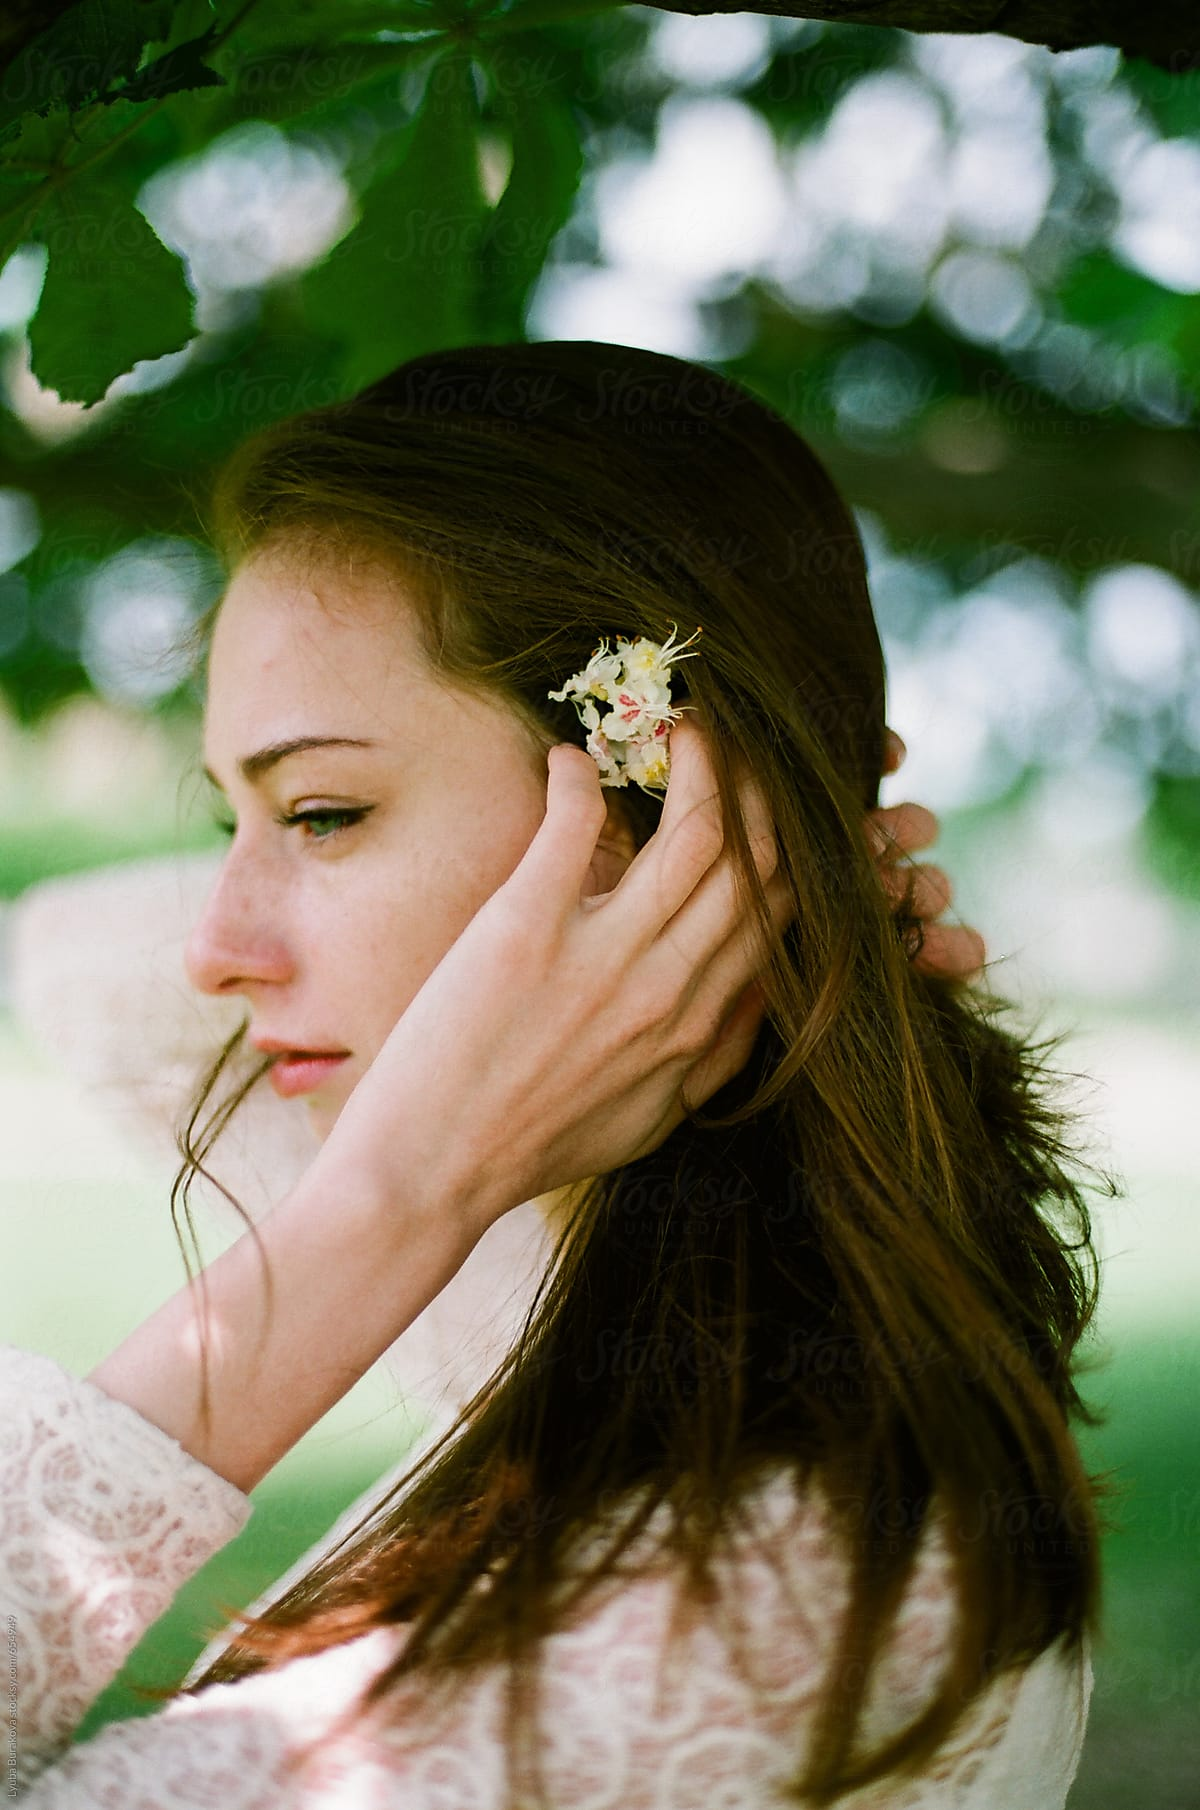 Portrait of beautiful woman with flower on her hair stocksy united portrait of beautiful woman with flower on her hair by lyuba burakova for stocksy united izmirmasajfo